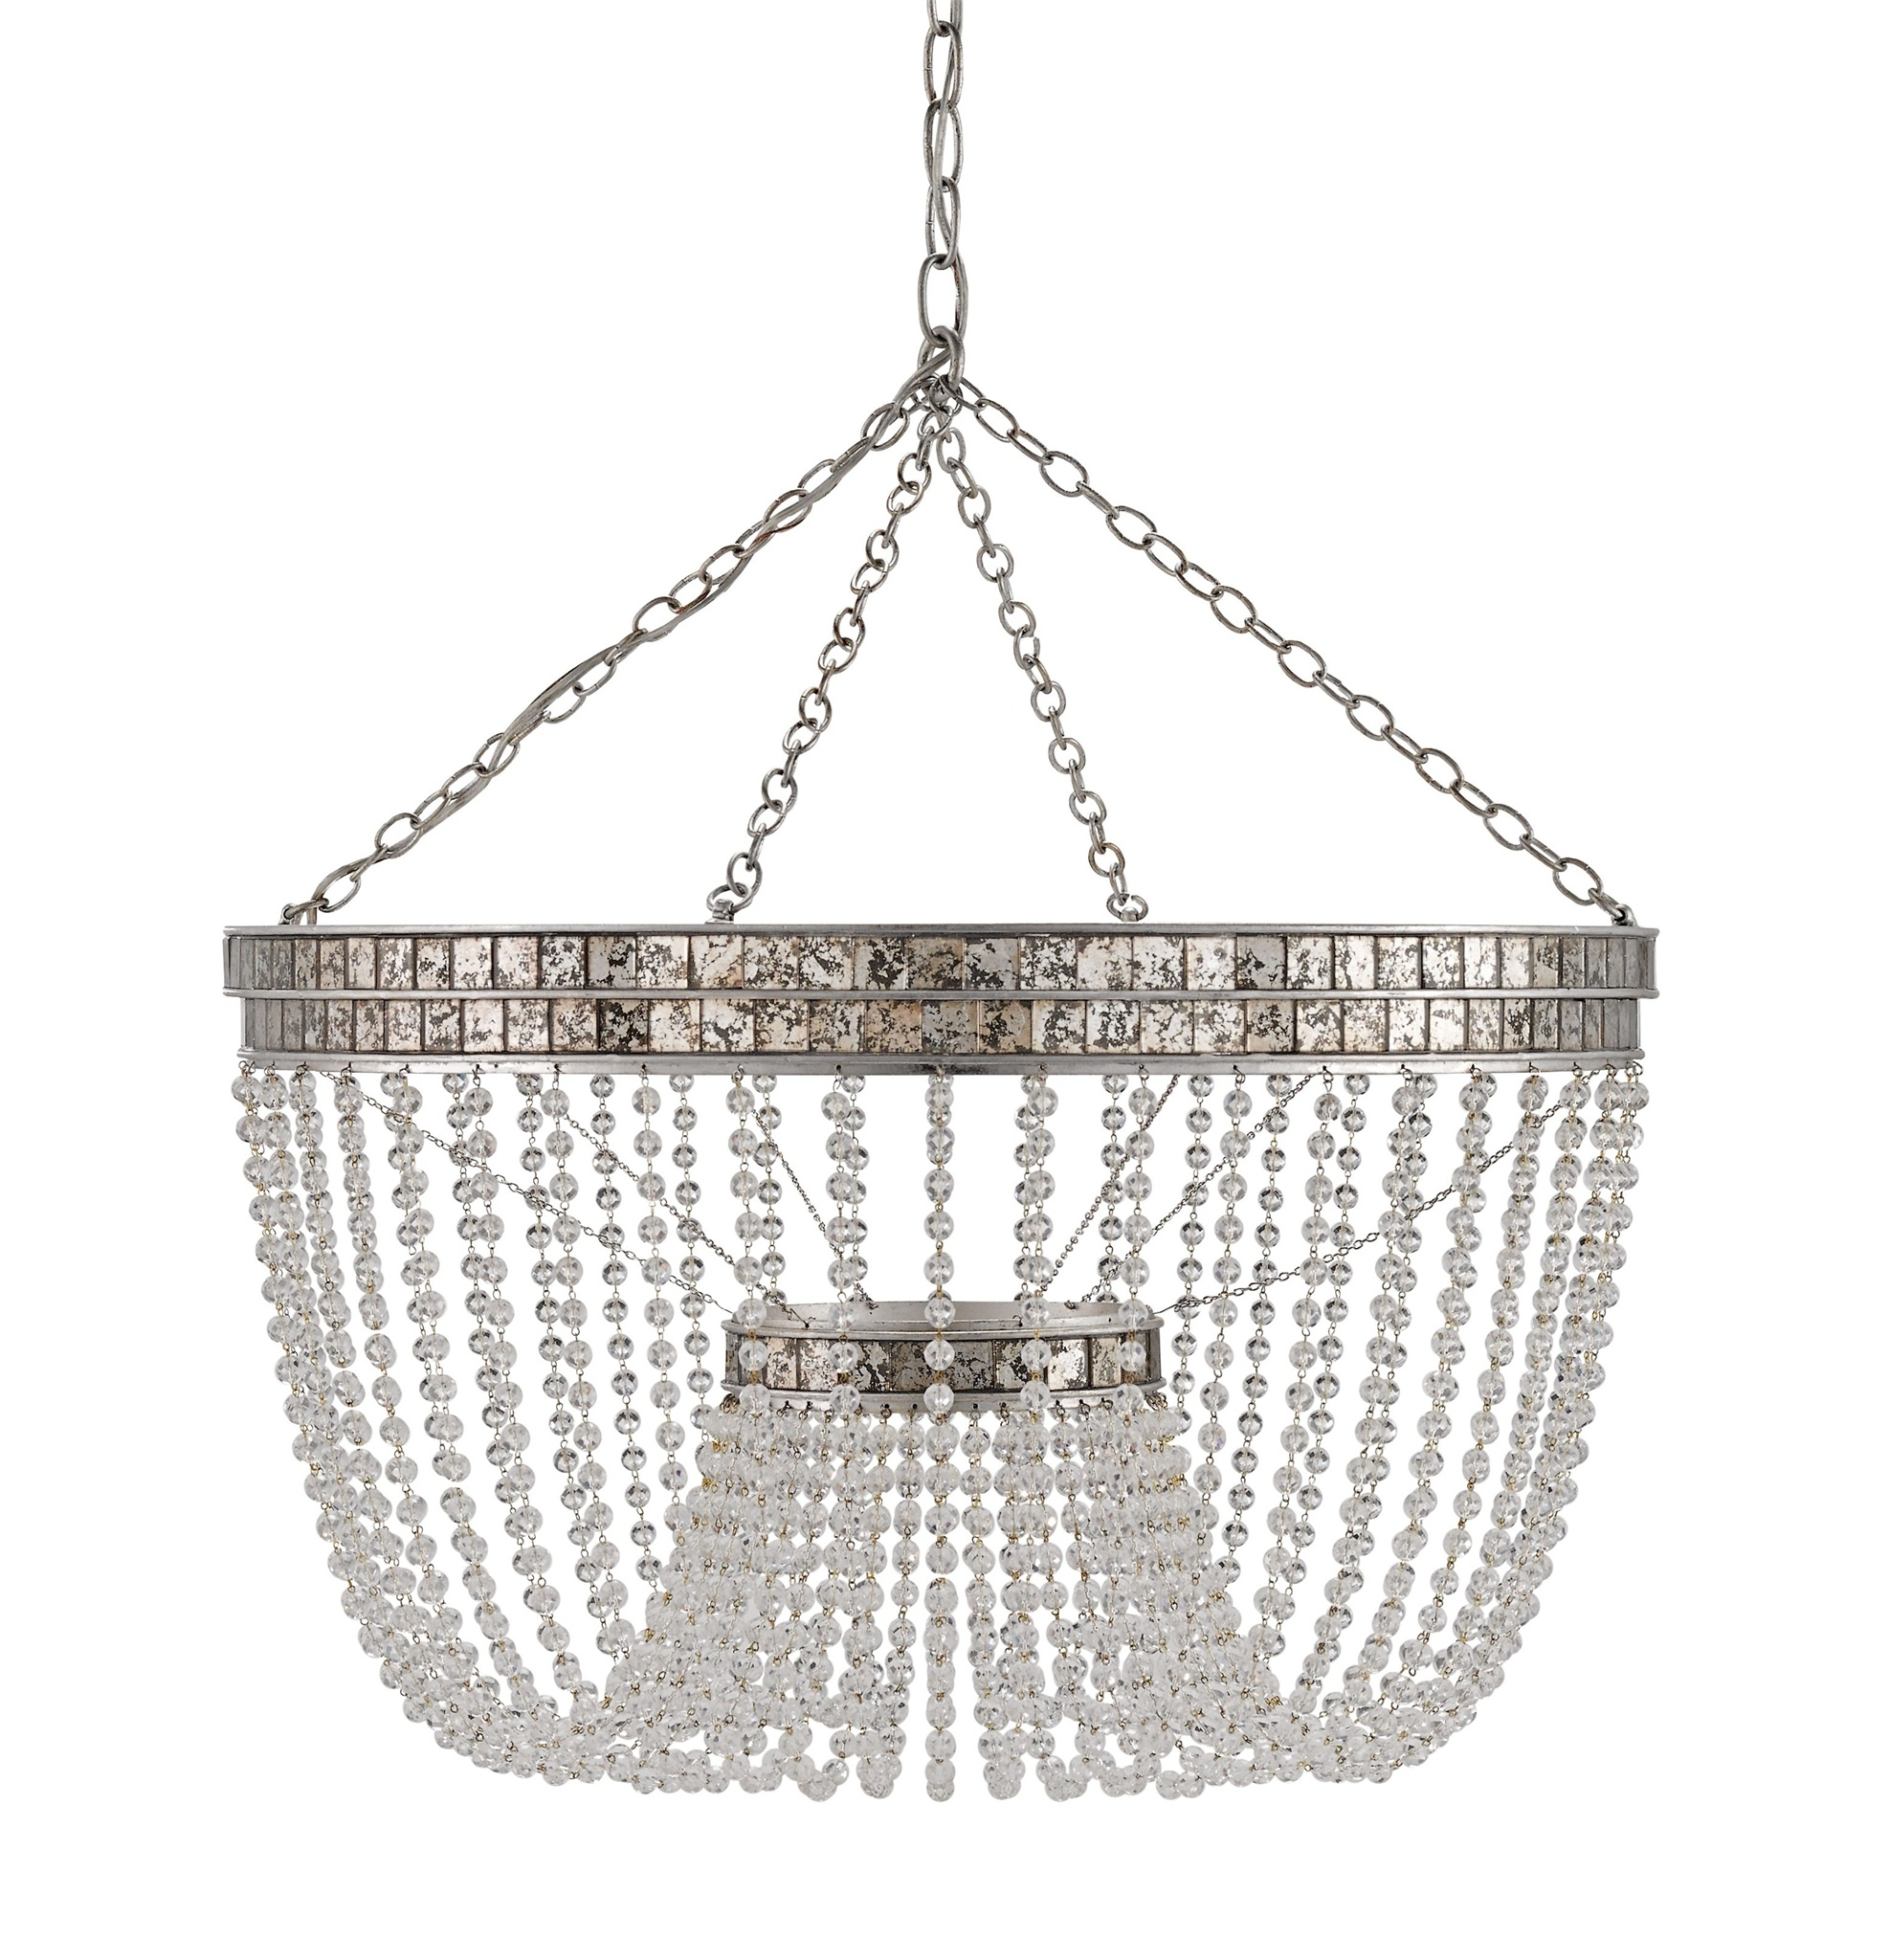 Chandelier by currey and company 9685 cc highbrow chandelier by currey and company 9685 cc arubaitofo Image collections